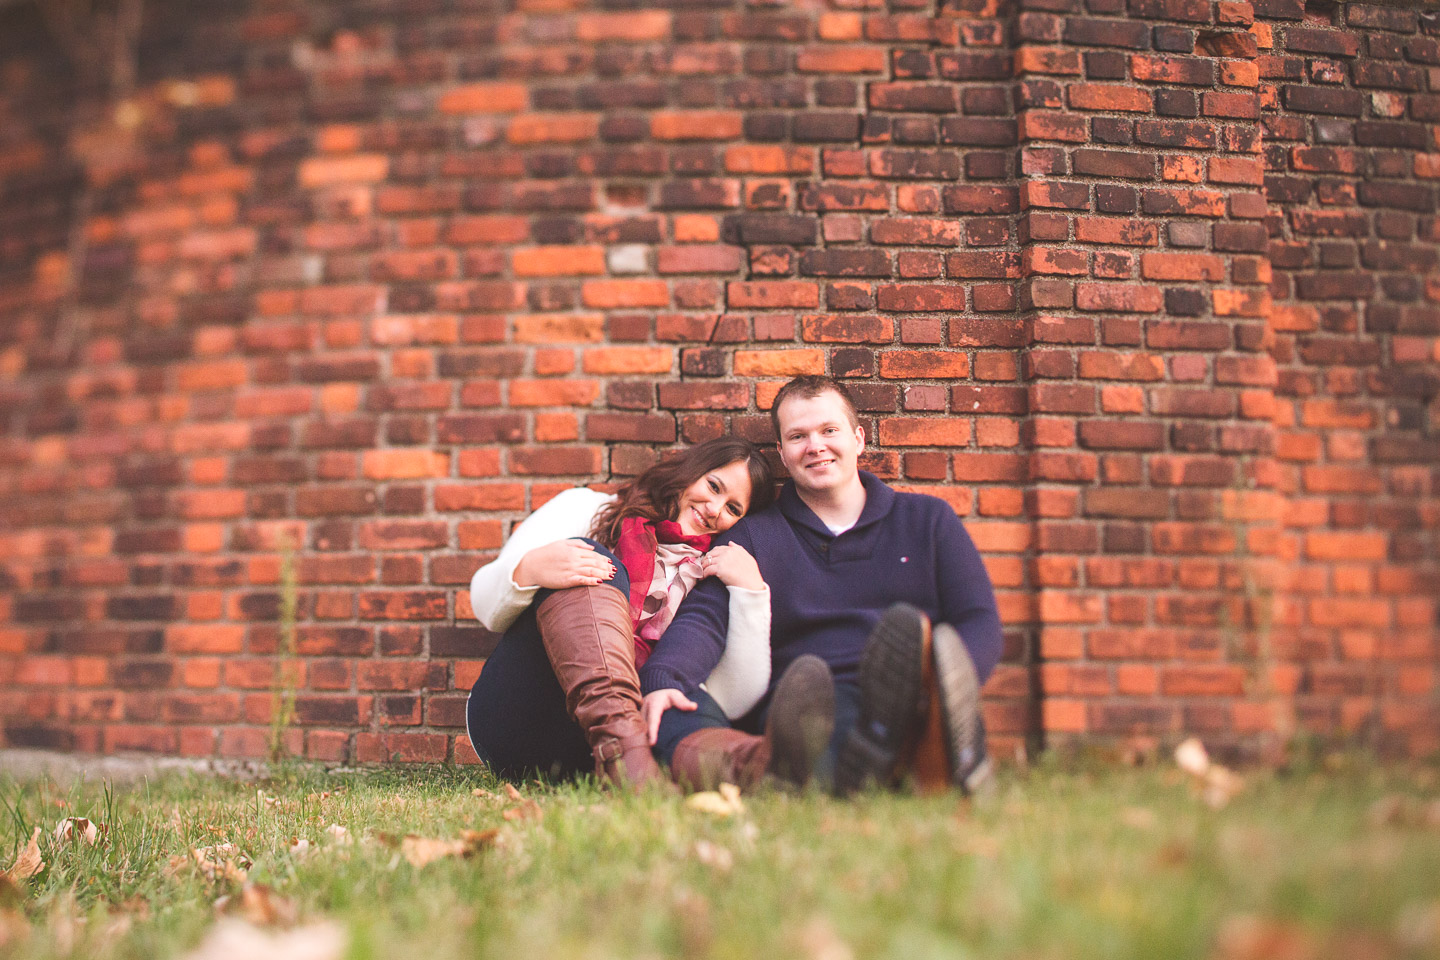 Engagement-Belle-Isle-Detroit-Couple-Sitting-Grass-Brick-Wall